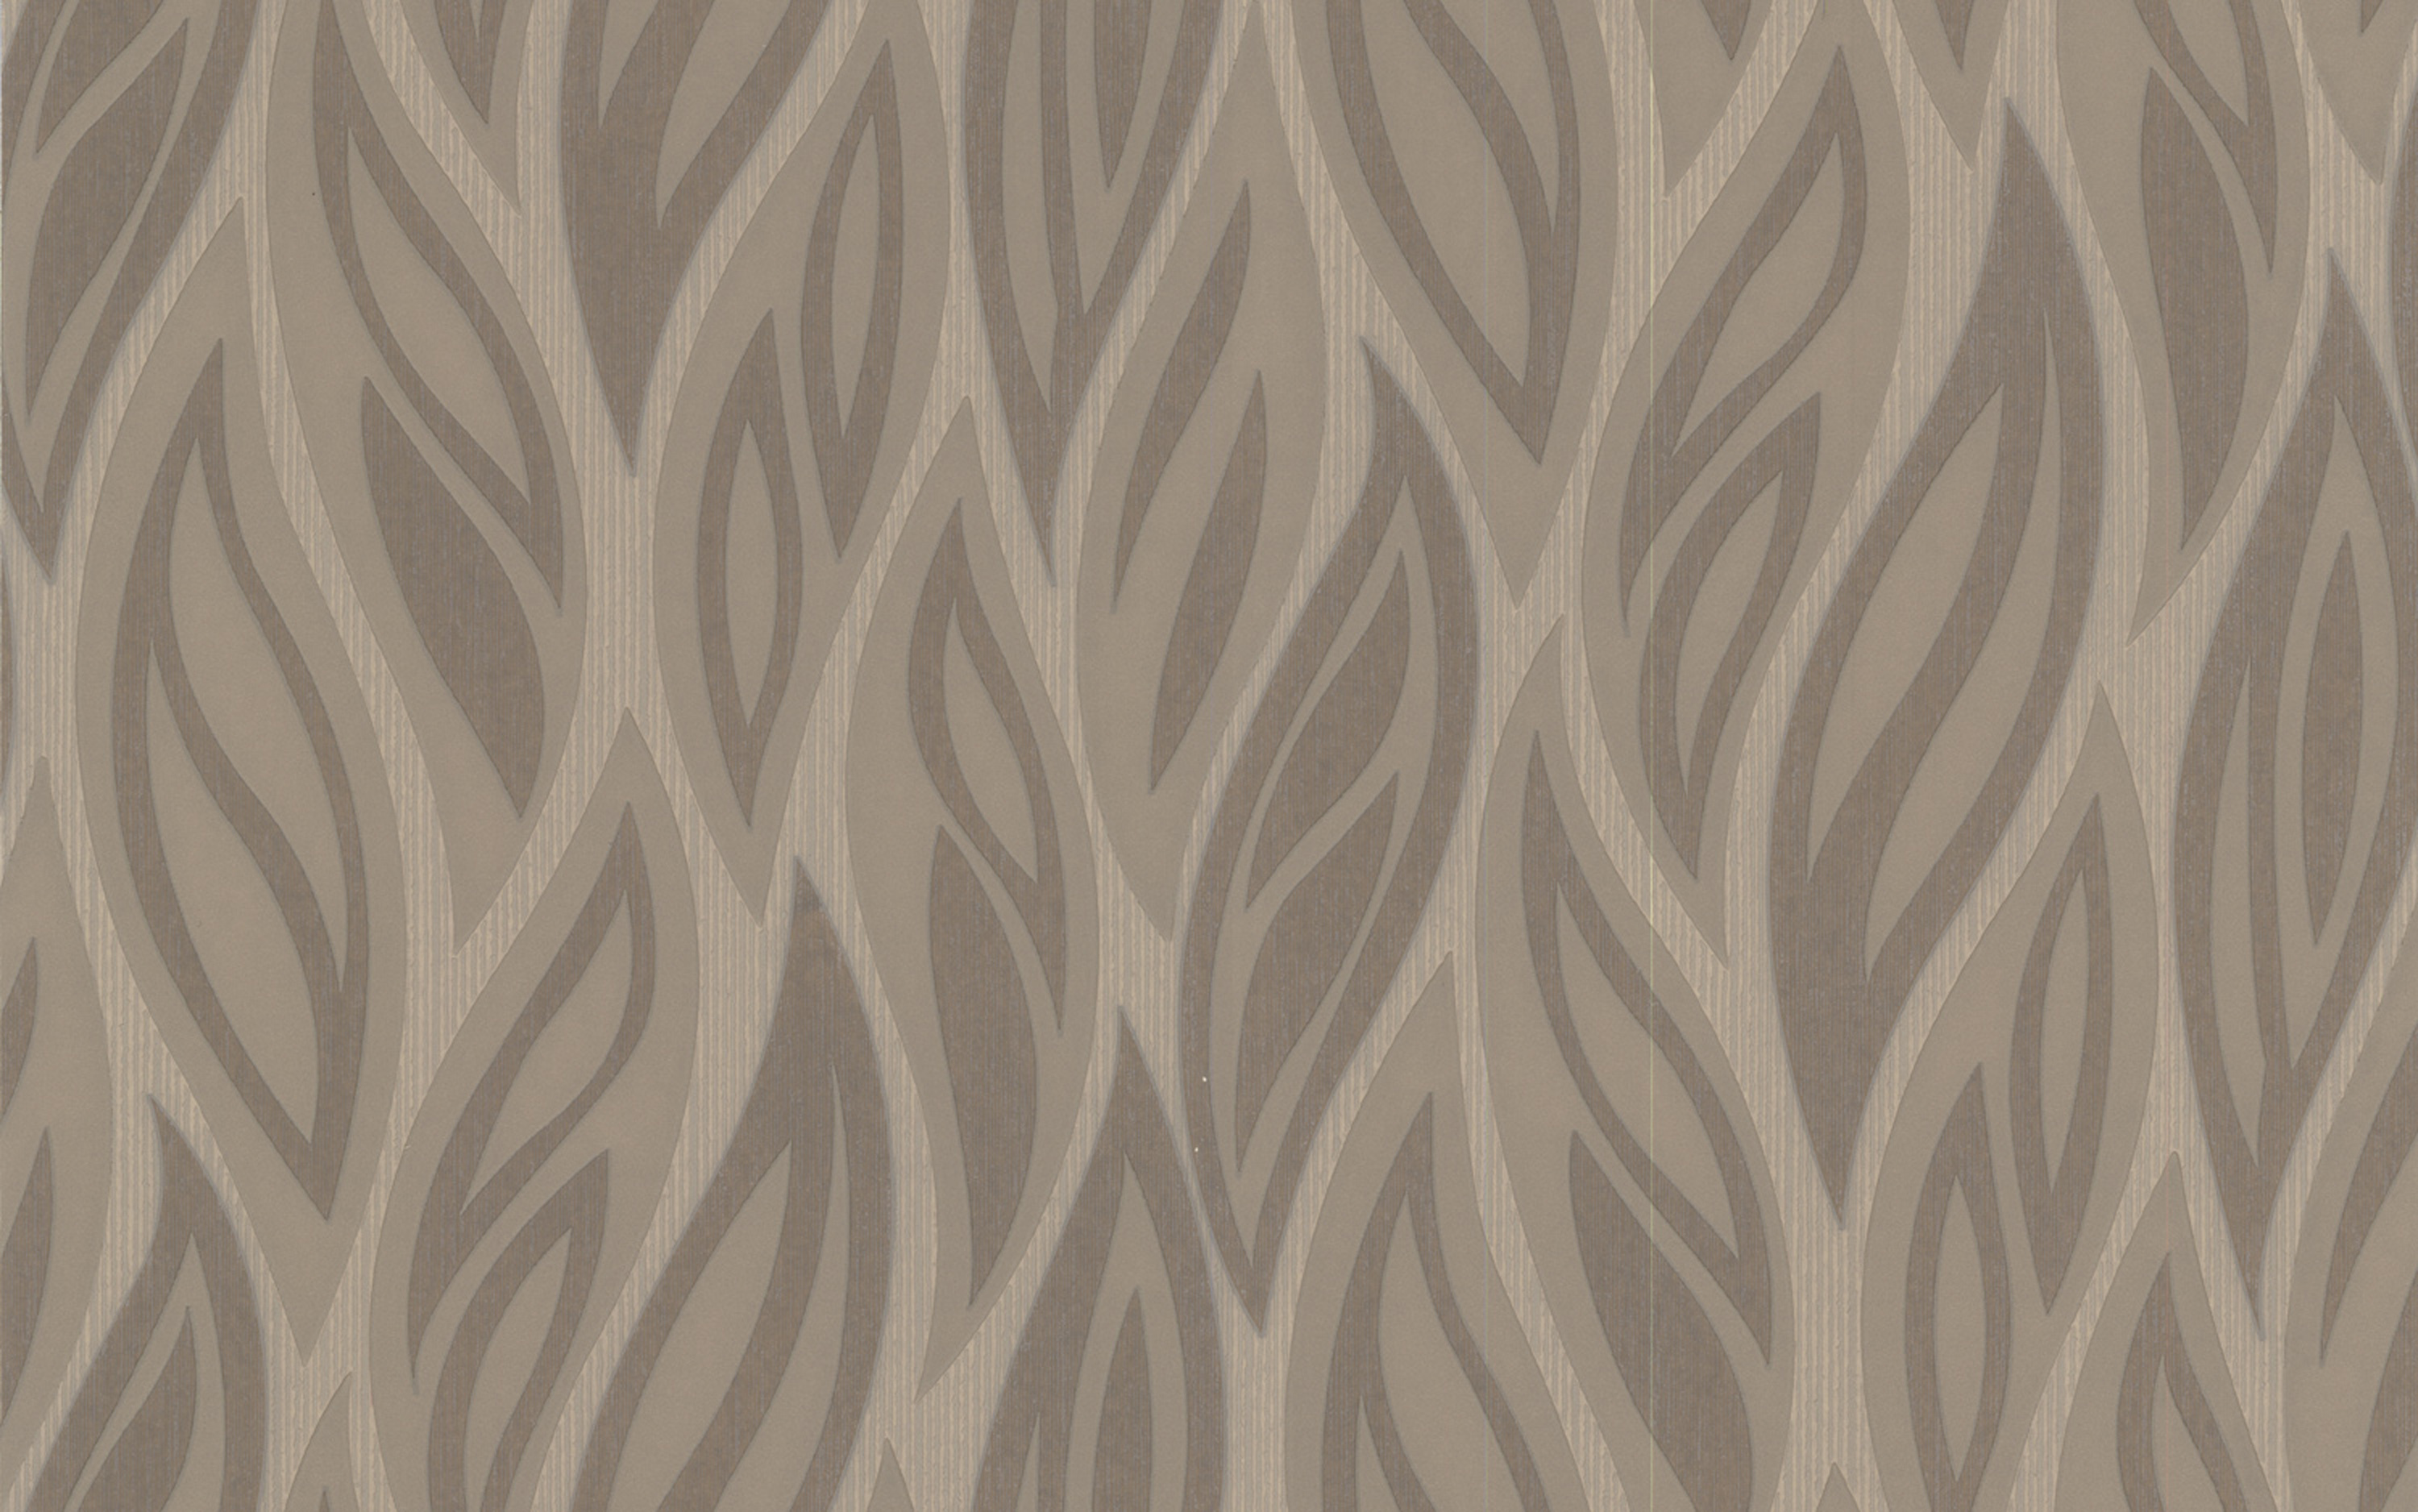 Unique Wallpaper for Homes - WallpaperSafari